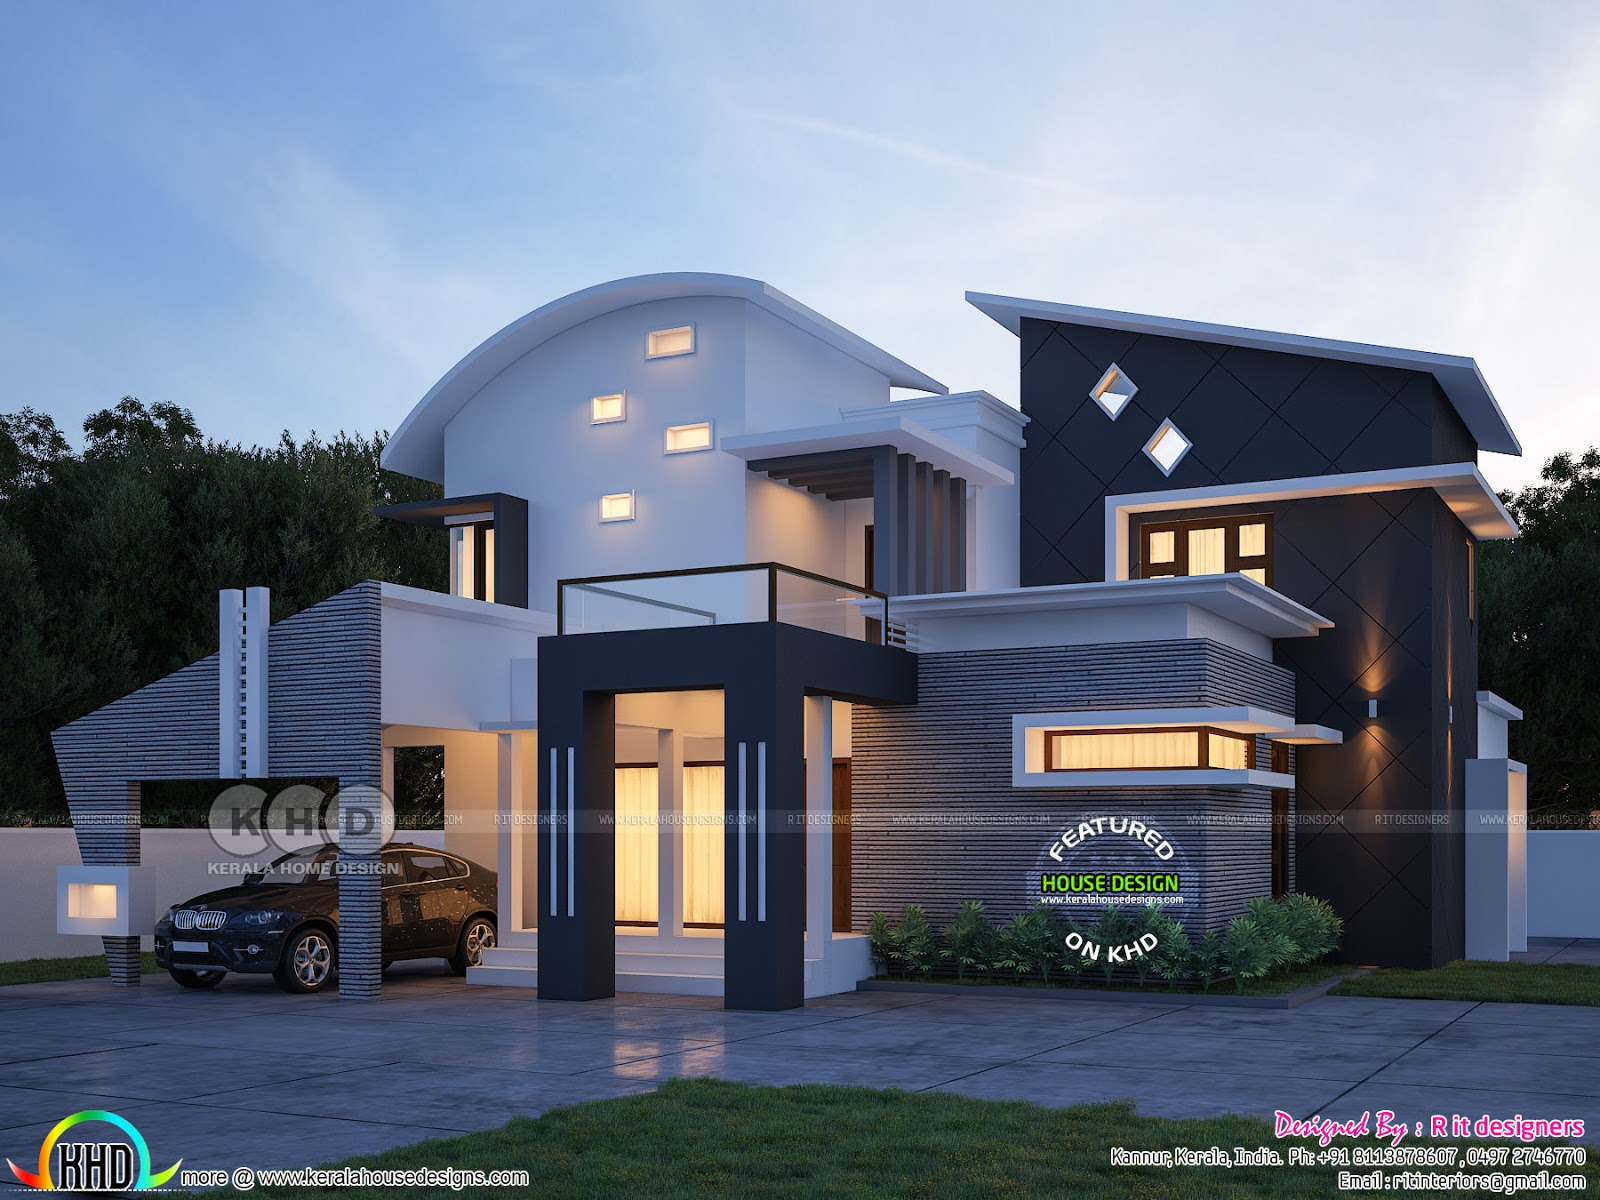 contemporary-residence-kannur-kerala Curved Roof House Design Kerala Home on modern garage with shed roof, house plans with gable roof, slate gray metal roof, ranch style house with hip roof, house with balcony roof, house plans with sloping roof, house with pool on roof, garage exterior design with metal roof, house with green metal roof, build a cupola roof, home roof, modern house roof,